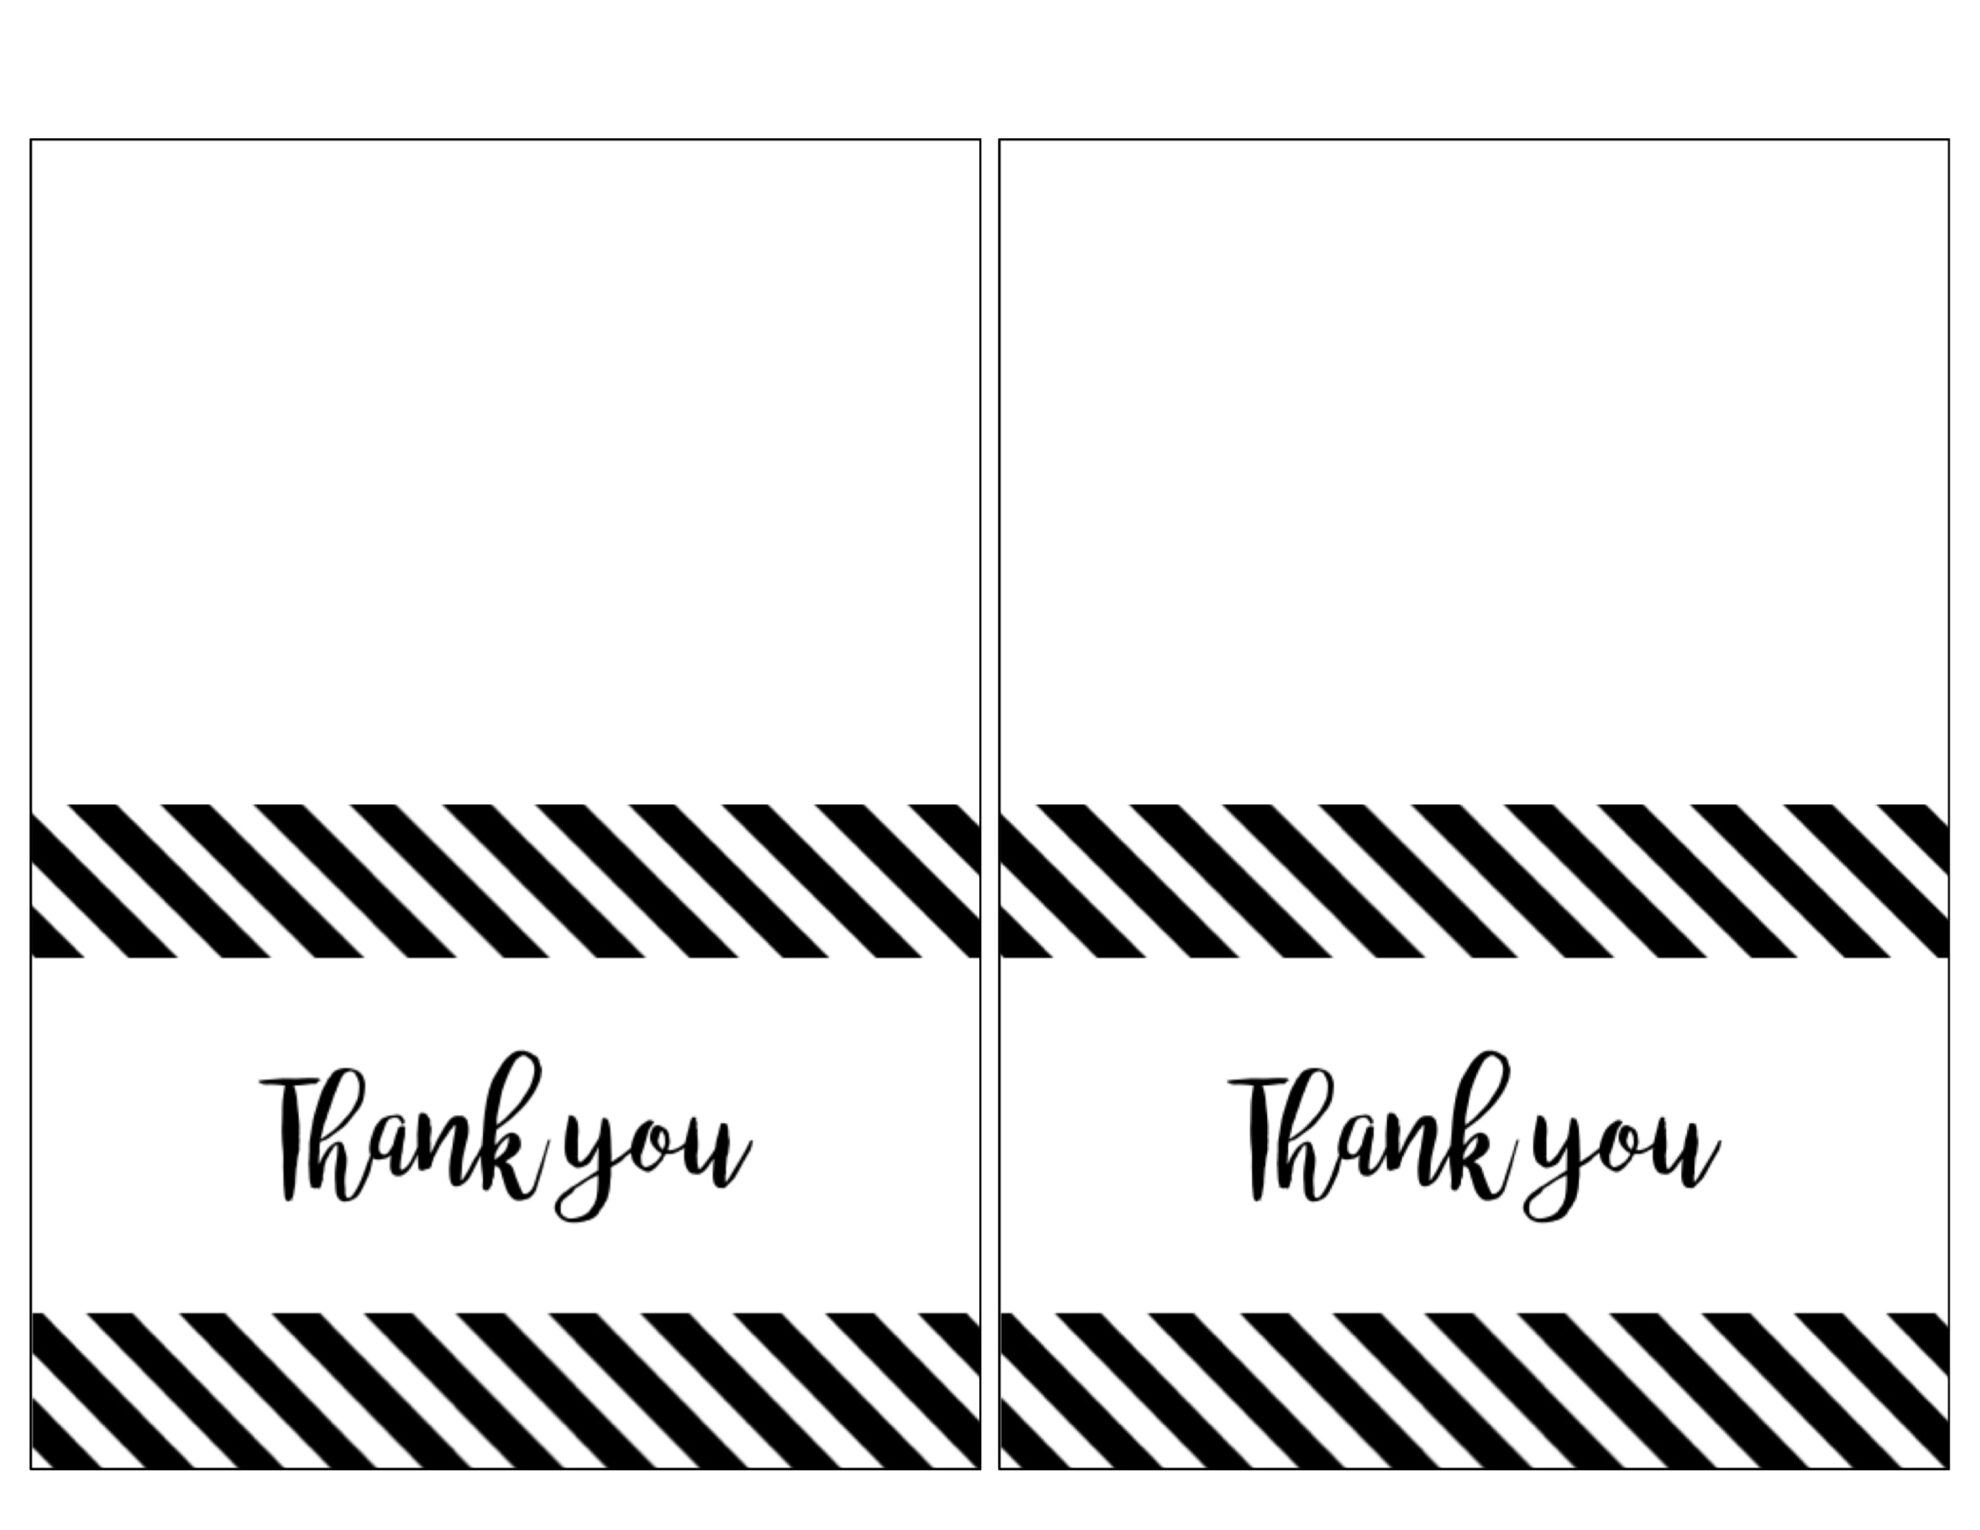 free blank thank you cards - gagnatashort.co